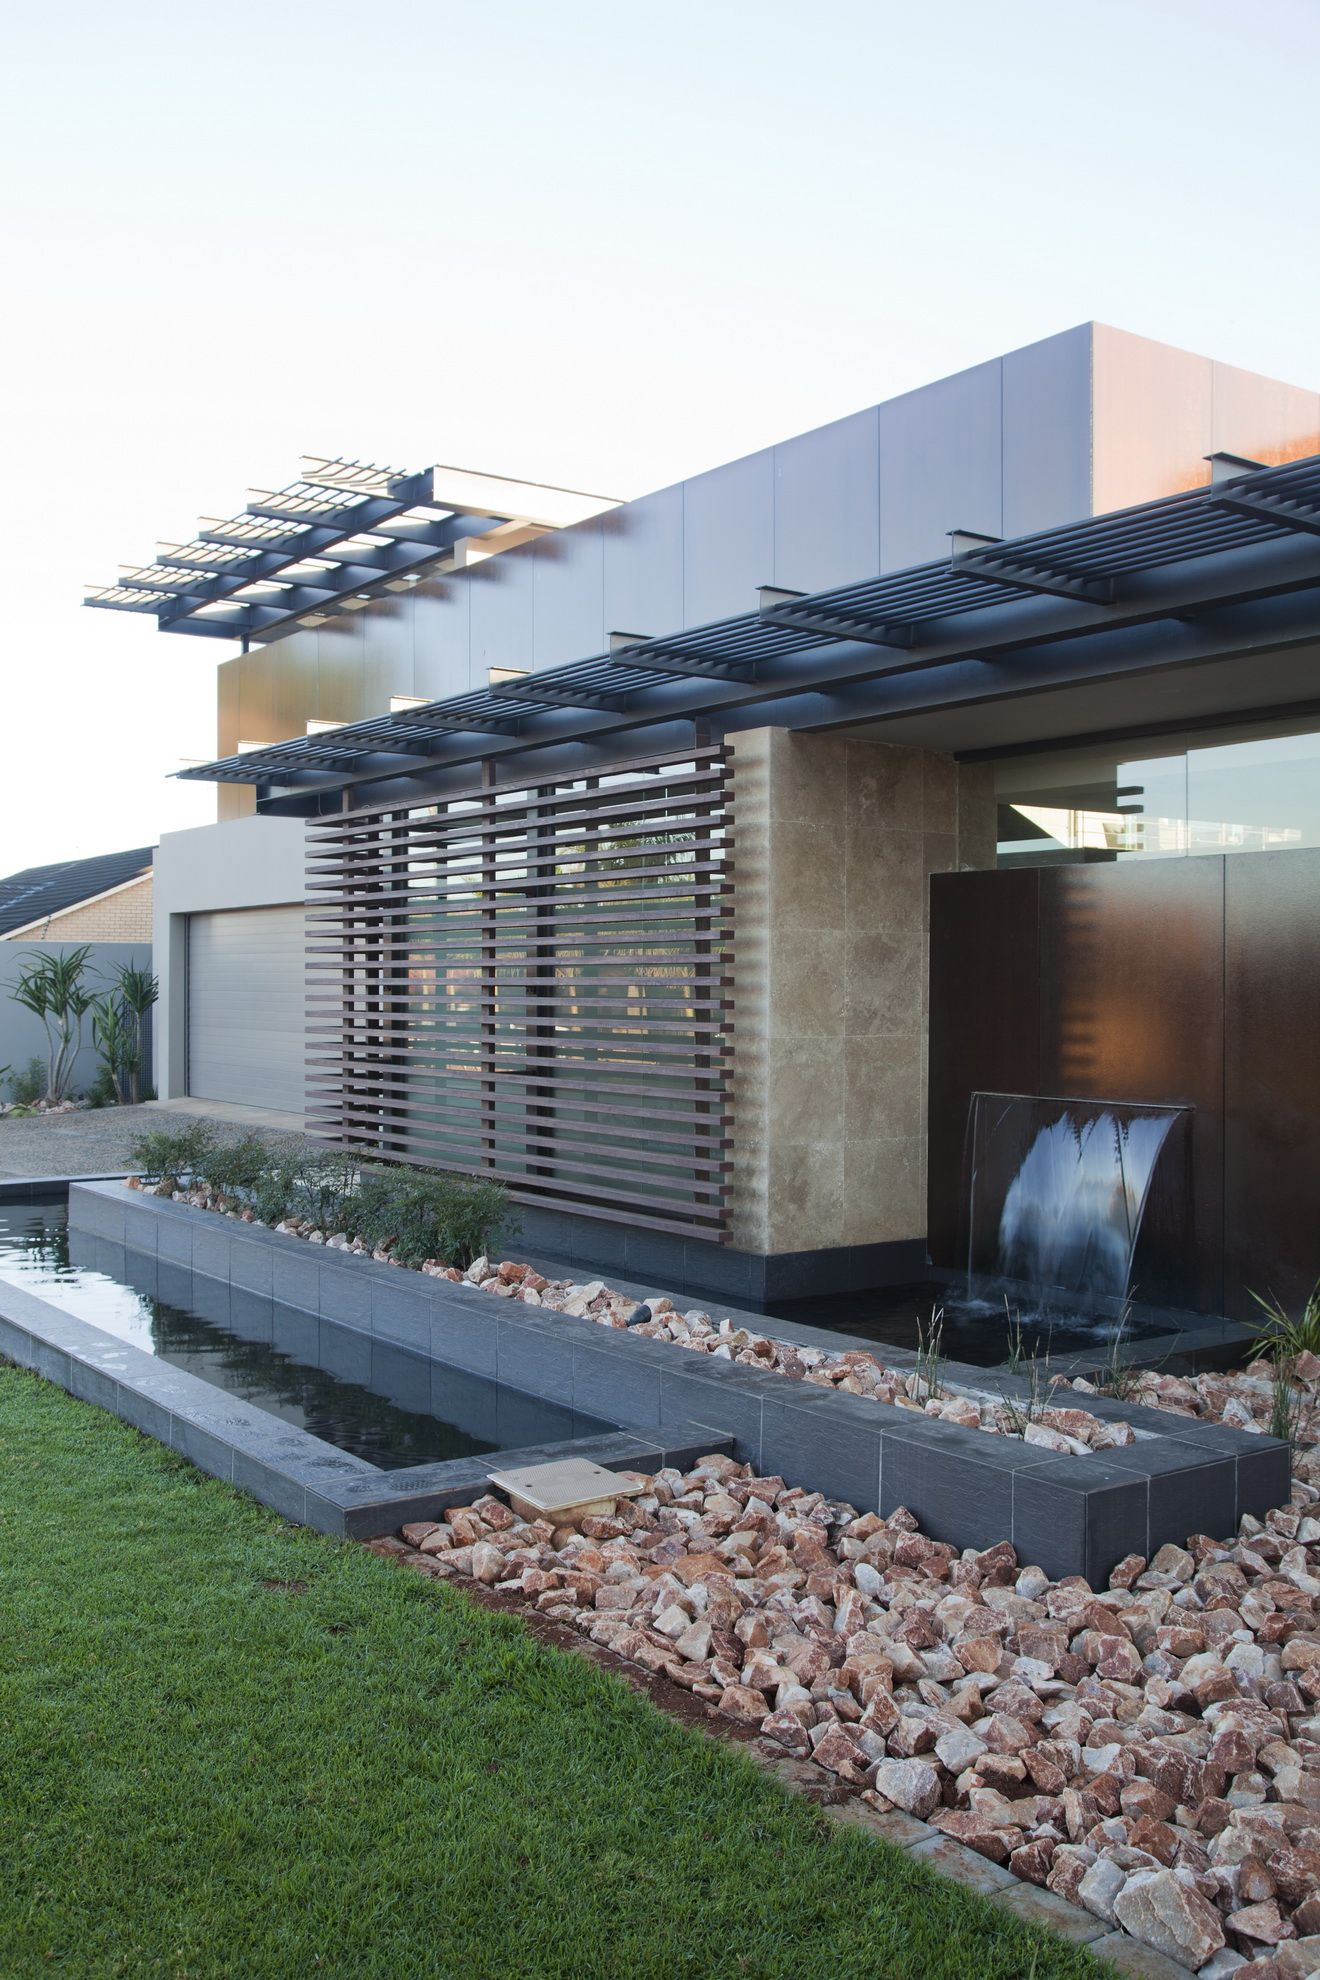 House Abo | Water | Nico van der Meulen Architects #Design #Architecture #Contemporist #Water